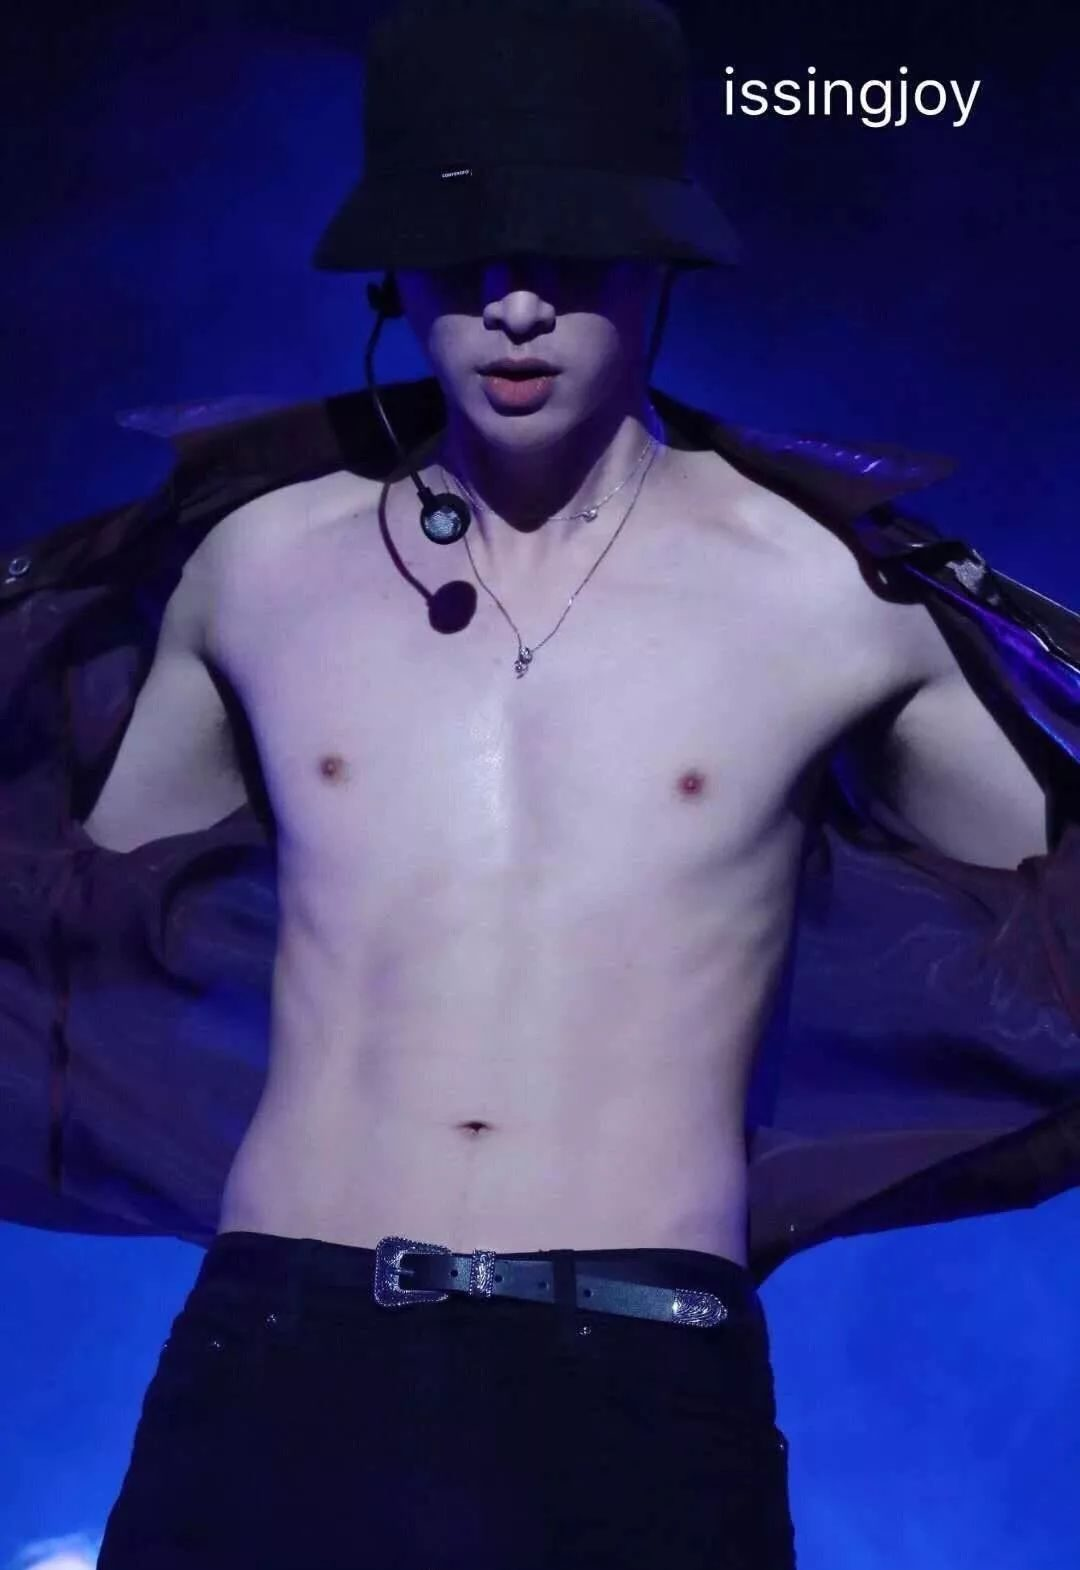 Zhang Yixing's abdominal muscles... Can you just call it abdomen?